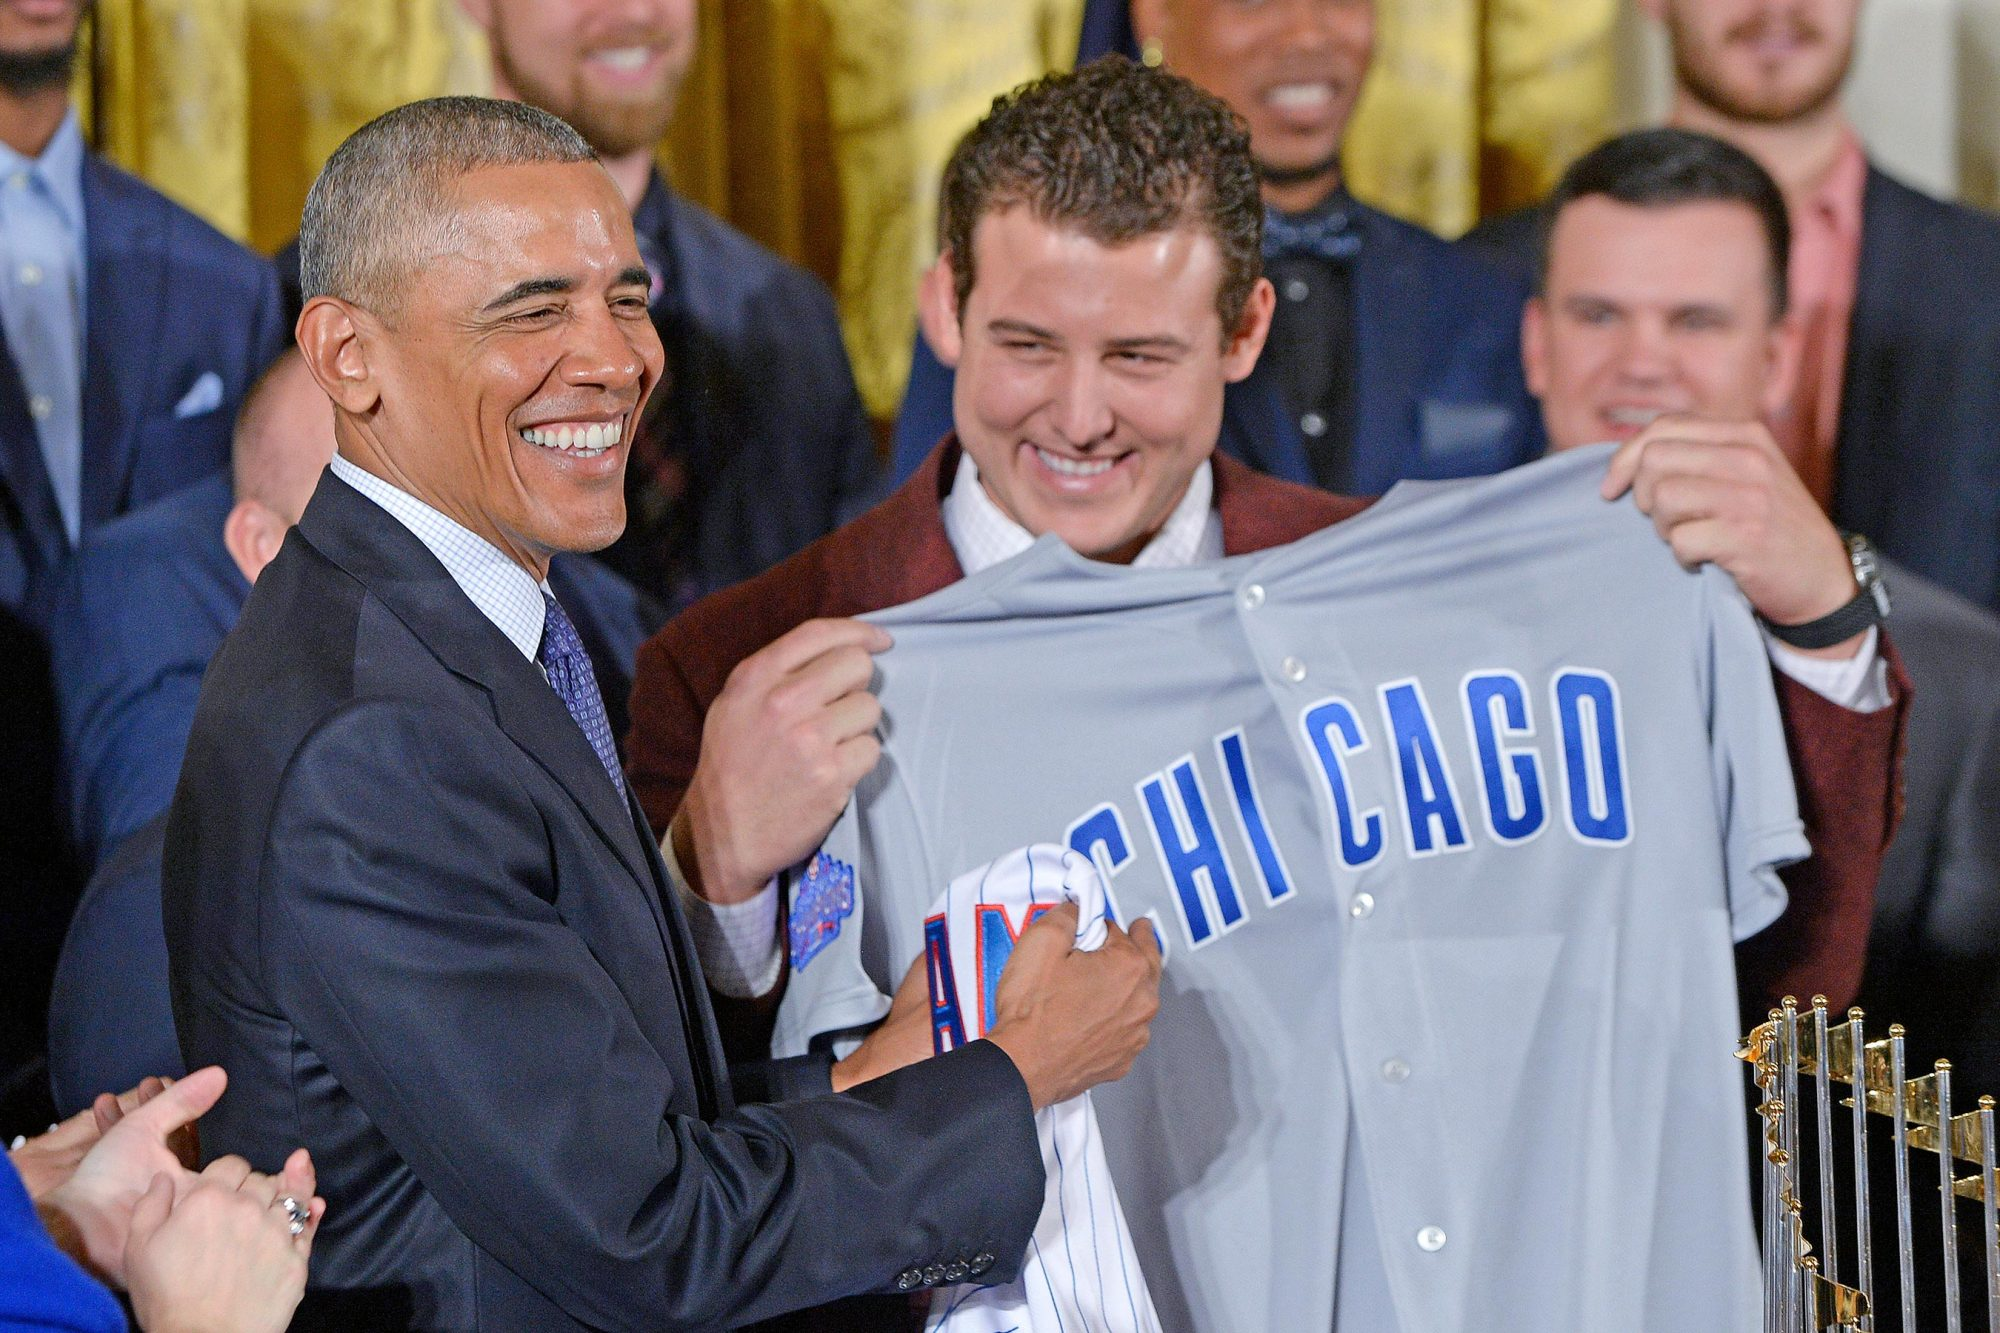 President Obama Hosts The Chicago Cubs to the White House - DC